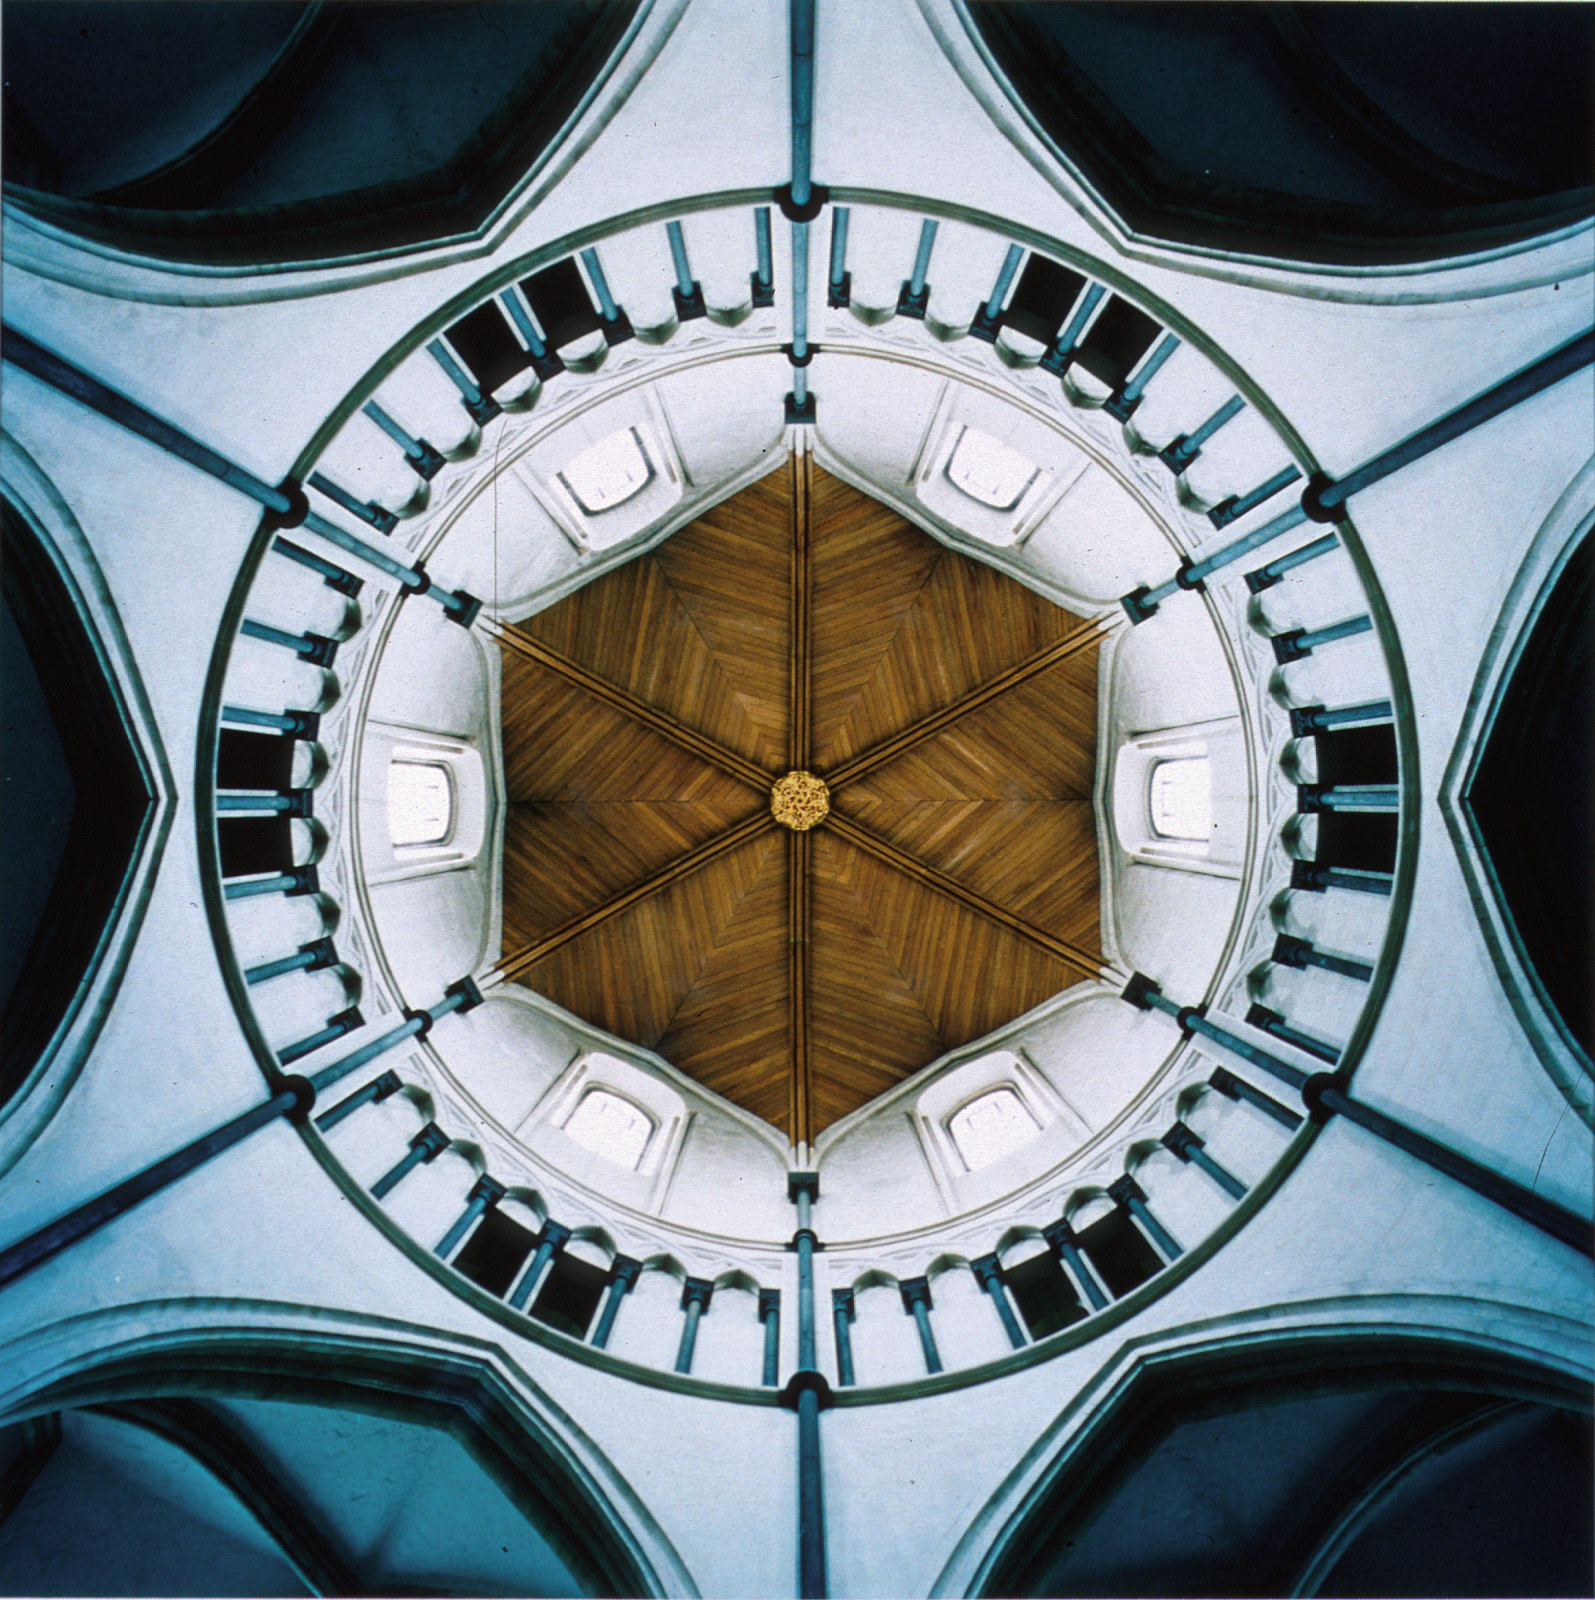 Dome #23209, Temple Church of Mary, London, England, 1997